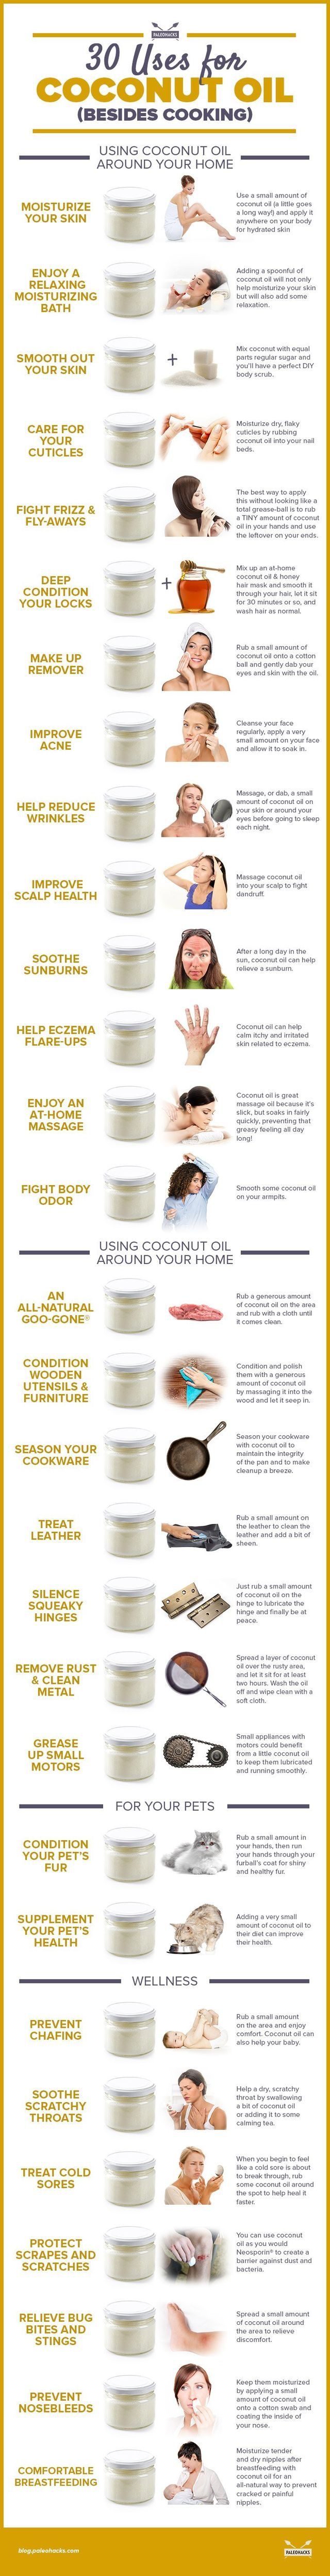 30 Uses for Coconut Oil (( Aside From Cooking ))